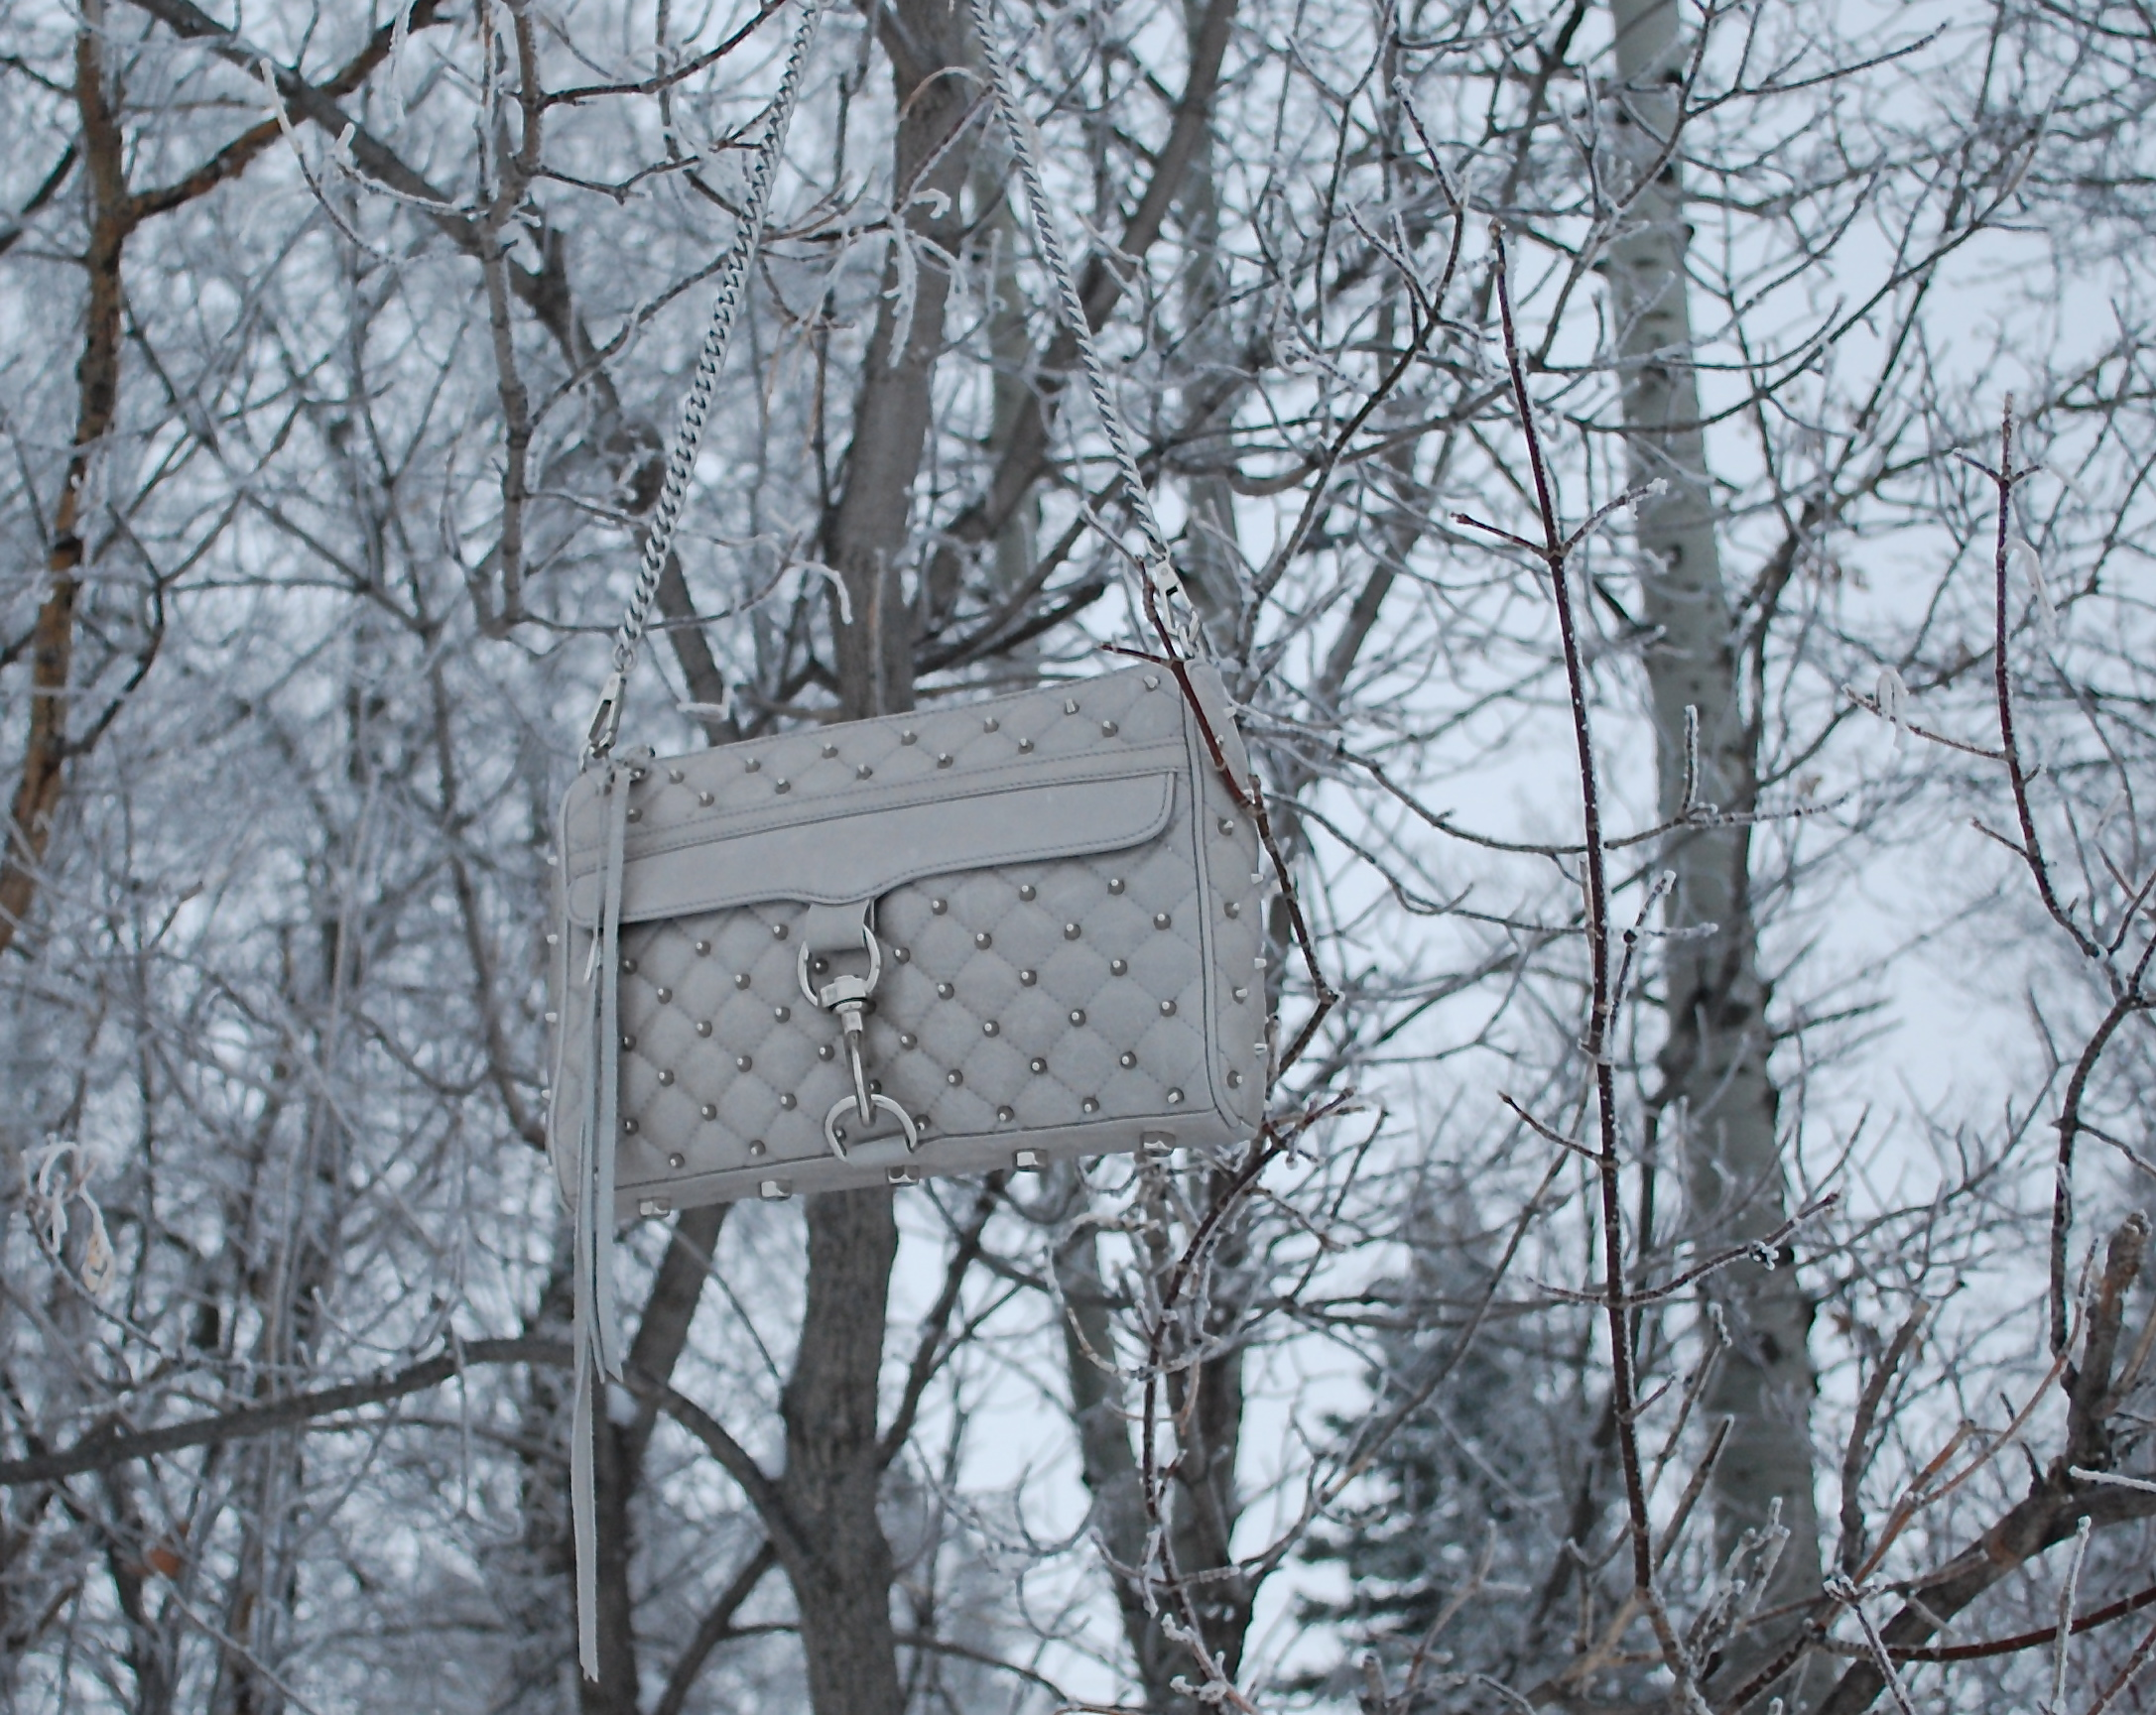 Hanging shot of purse